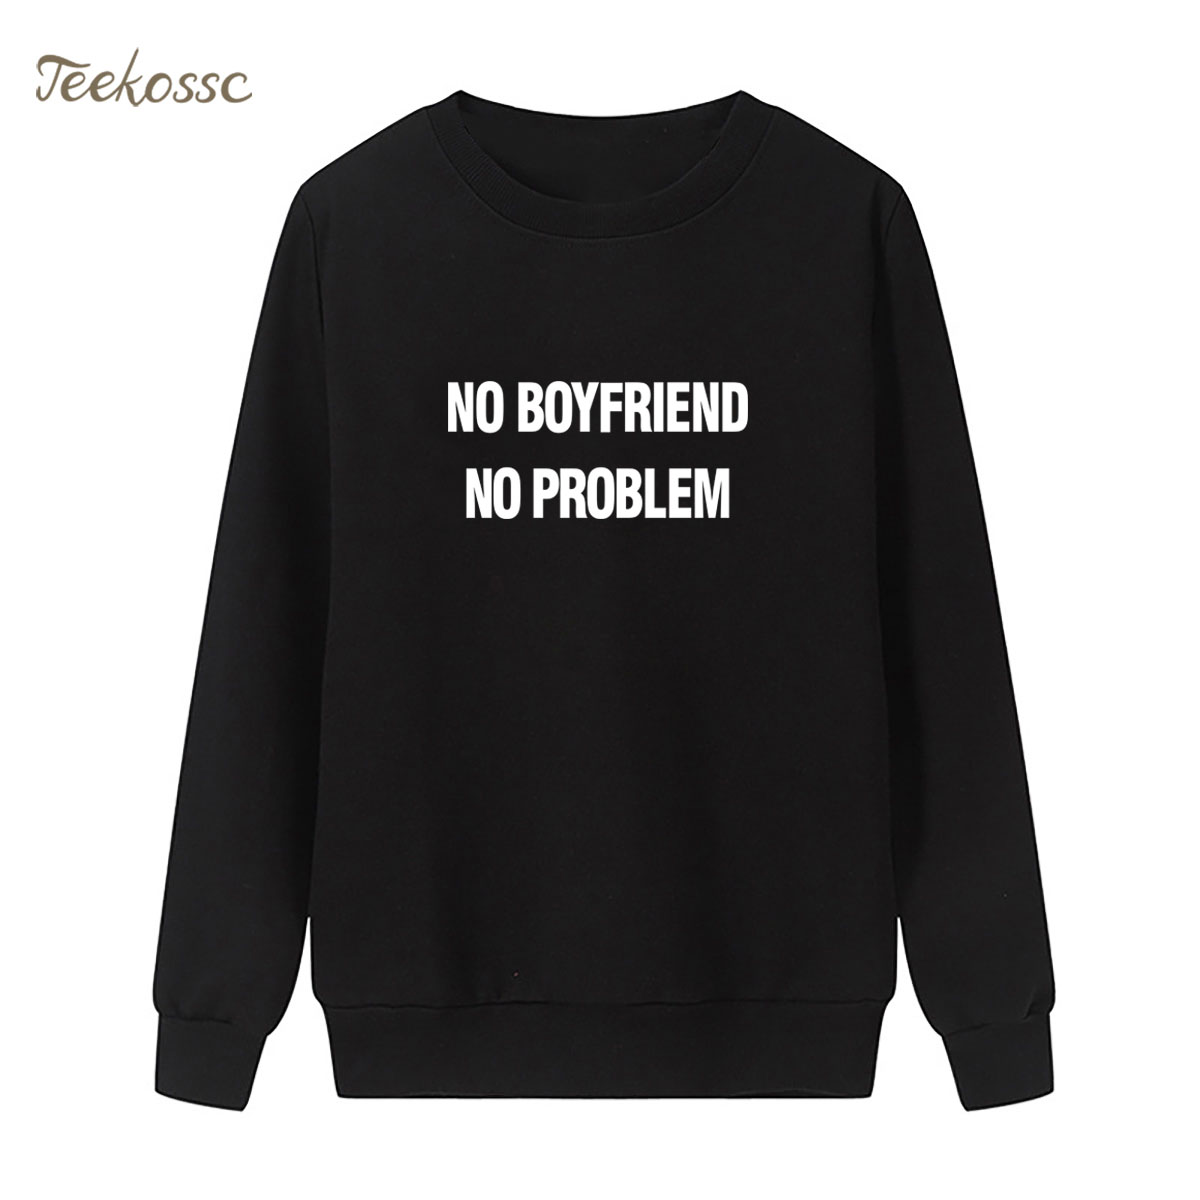 NO BOYFRIEND NO PROBLEM Letters Print Sweatshirt Black Hoodie 2018 Winter Autumn Women Lasdies Pullover Fleece Warm Streetwear